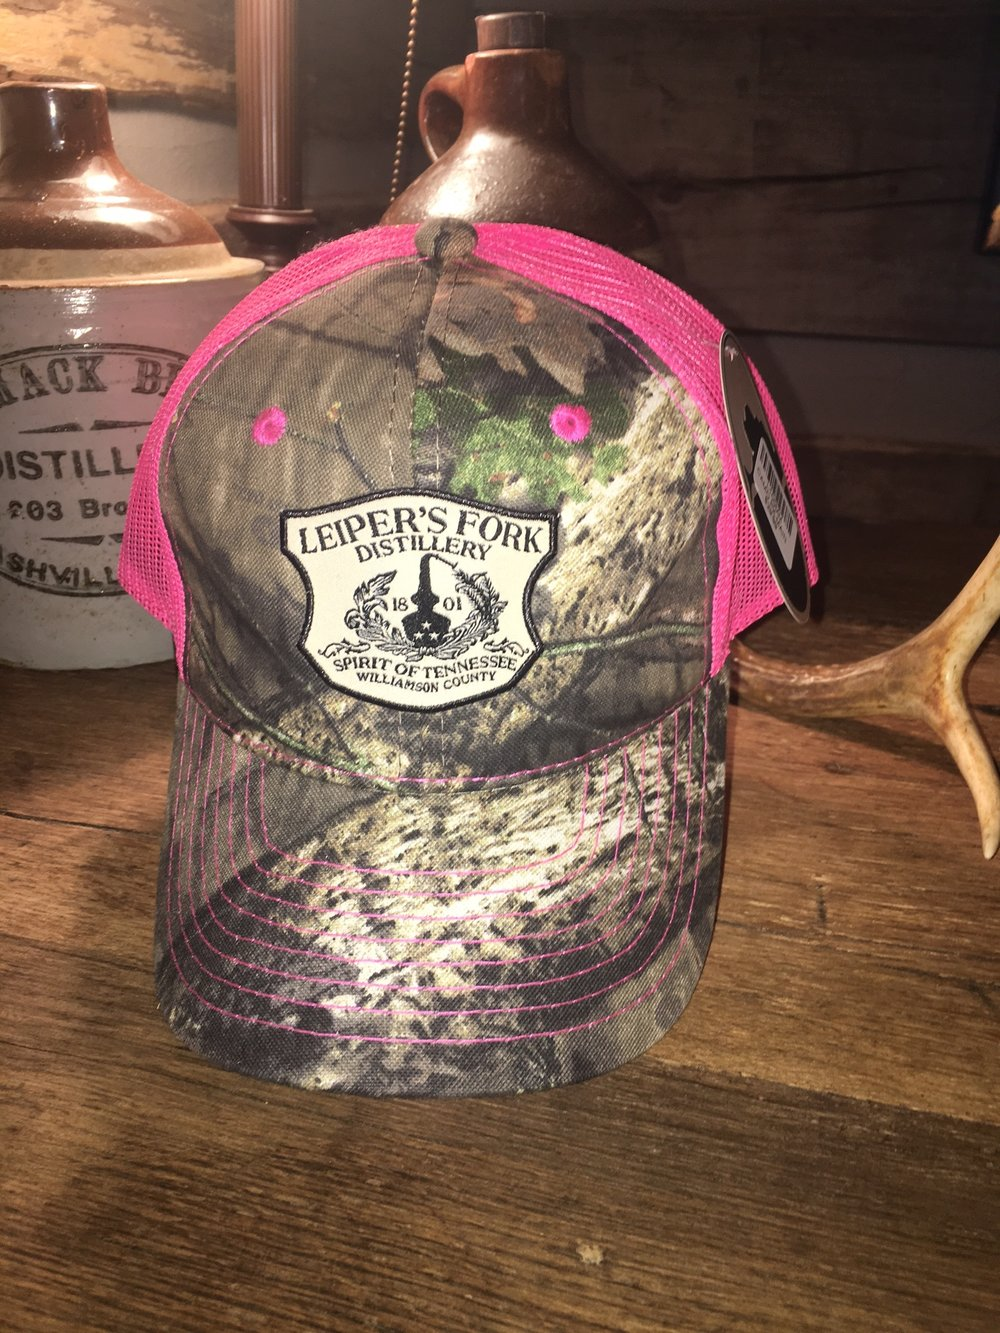 Ladies Obsession Hot Pink Mossy Oak Cap with Leiper's Fork Distillery's Main Logo